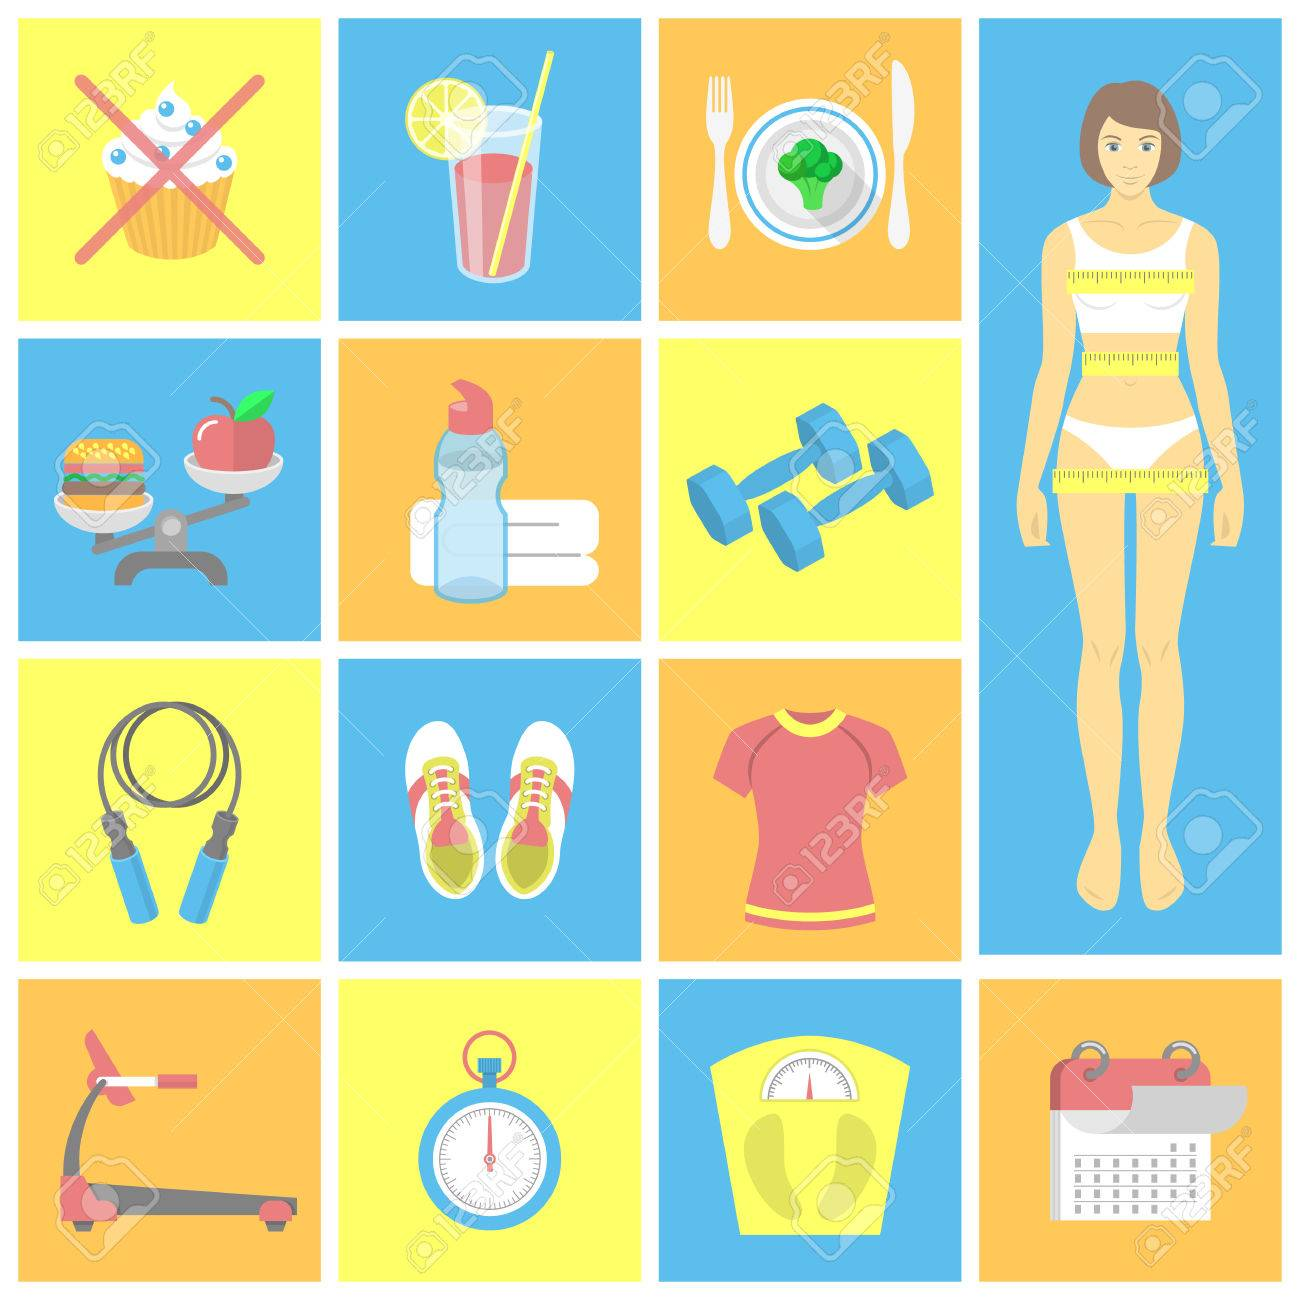 Set of flat icons for female fitness Vector symbols for weight